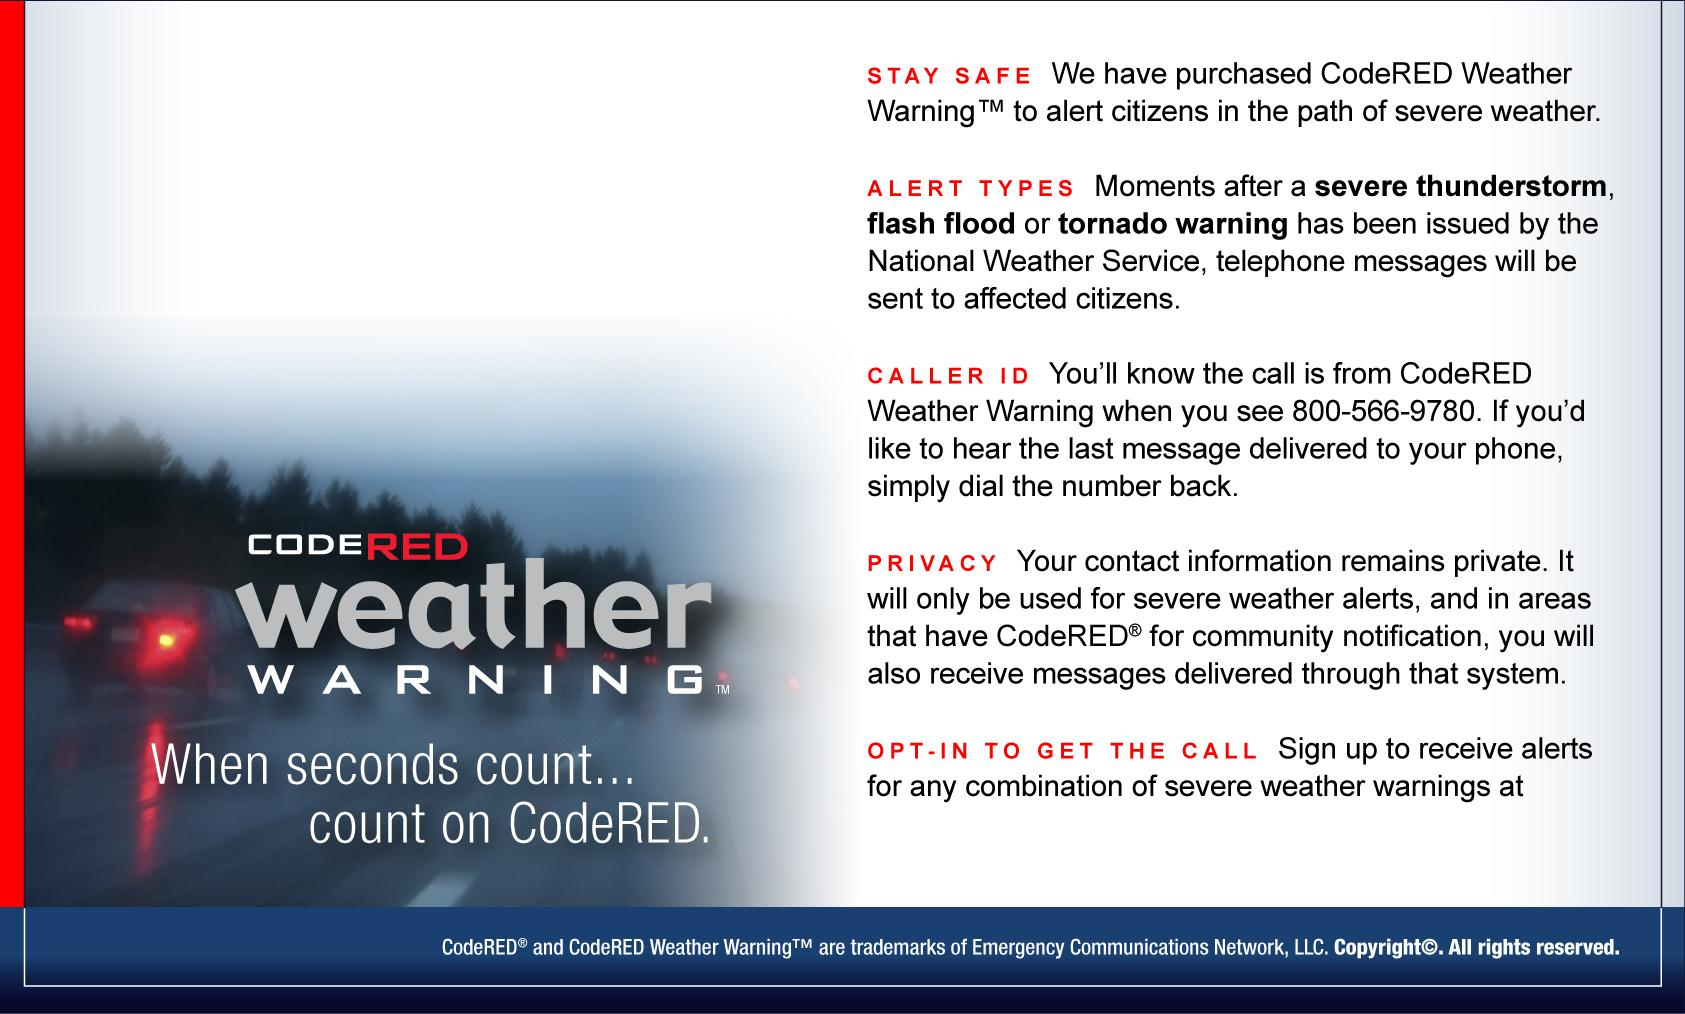 CodeRED WEATHER WARNINGS | Riverdale, GA - Official Website